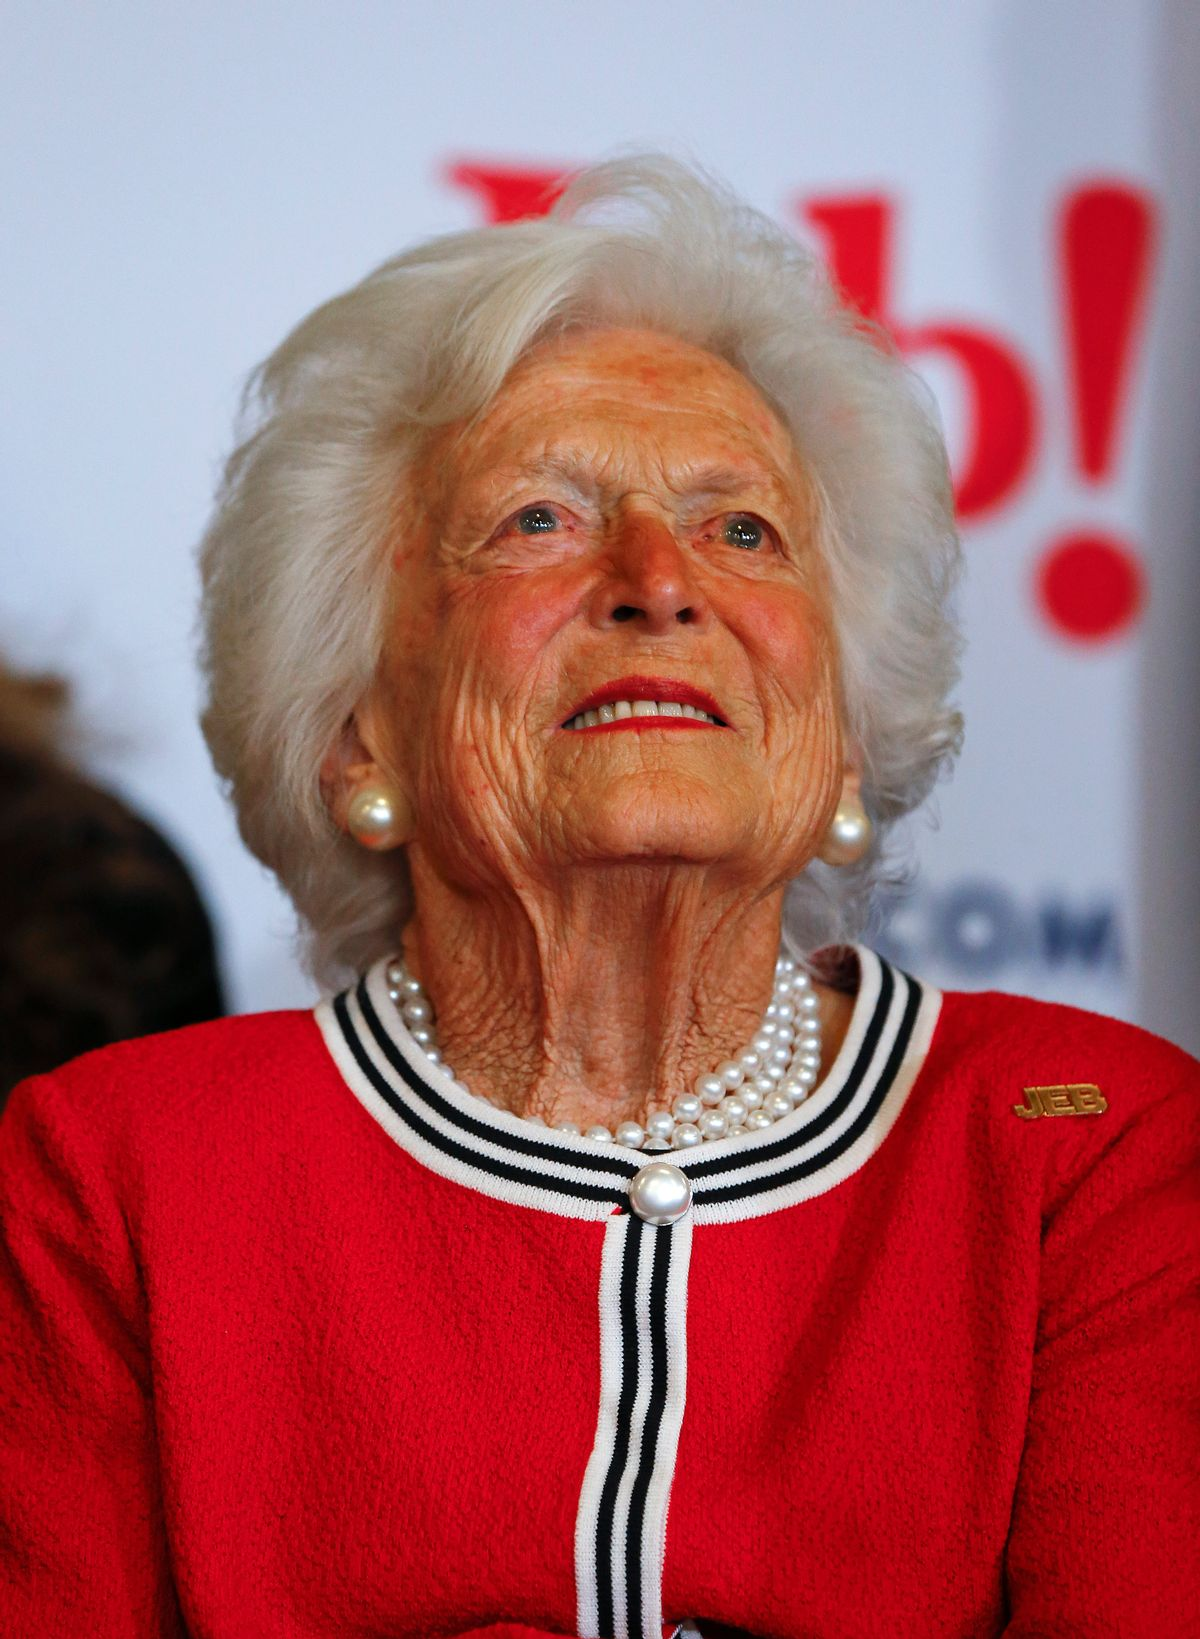 Former first lady Barbara Bush listens to her son, Republican presidential candidate, former Florida Gov. Jeb Bush speak during a campaign stop at Wade's Restaurant, Friday, Feb. 19, 2016 in Spartanburg, S.C. (AP Photo/Paul Sancya) (AP)